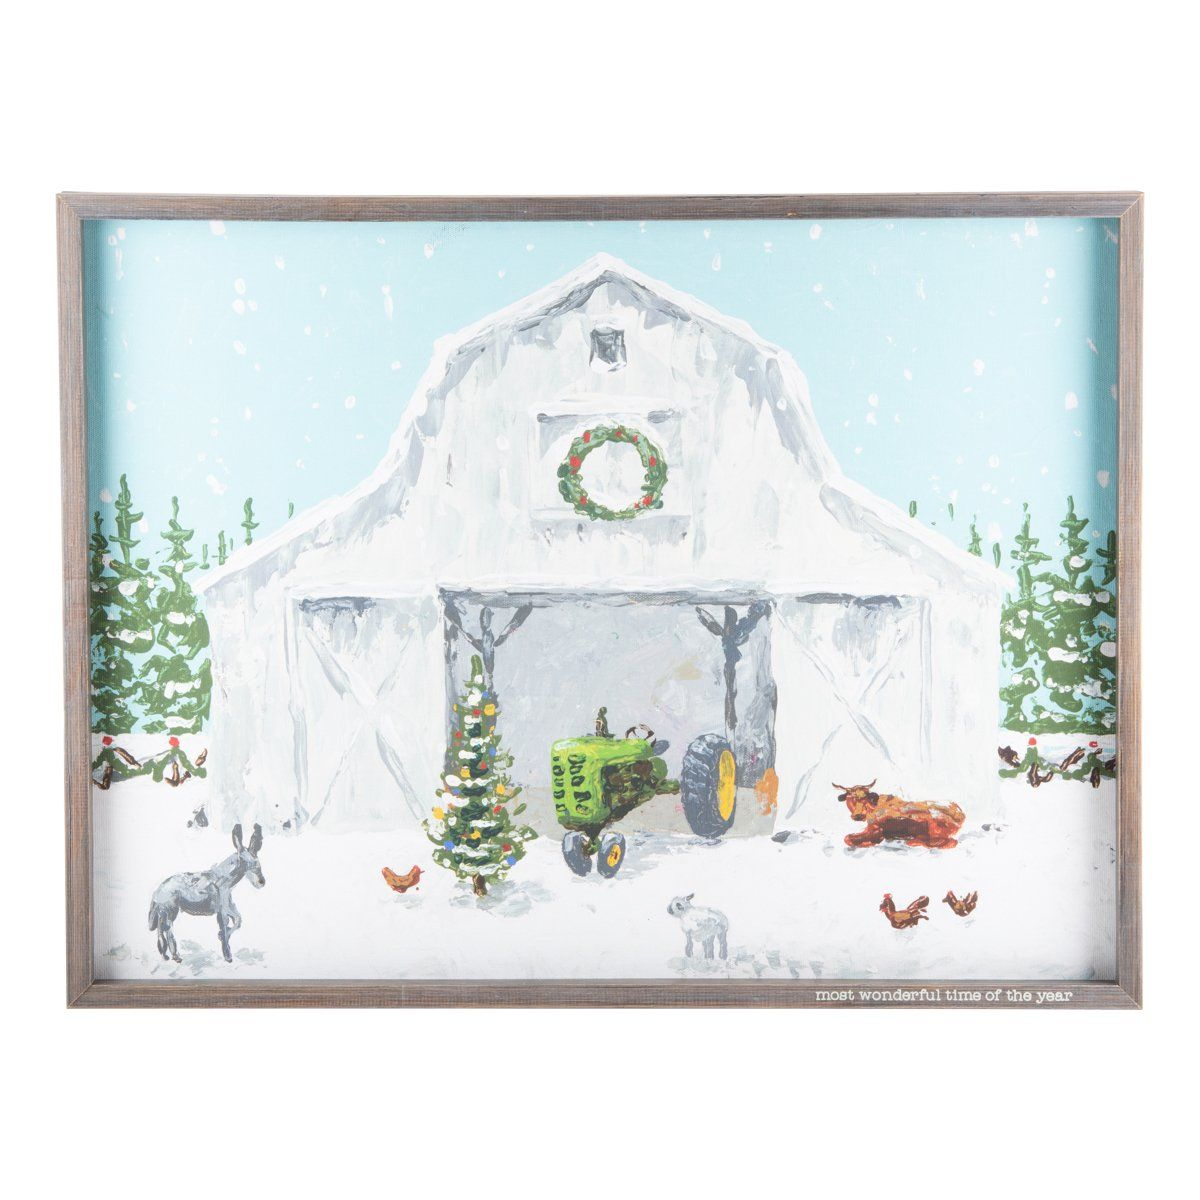 Let it snow, let it snow, let it snow! Cozy up to the fireplace with this feel-good piece on the mantel to bring a winter atmosphere to your home. This framed canvas would look great in a farmhouse or any Southern home! Original Design 24